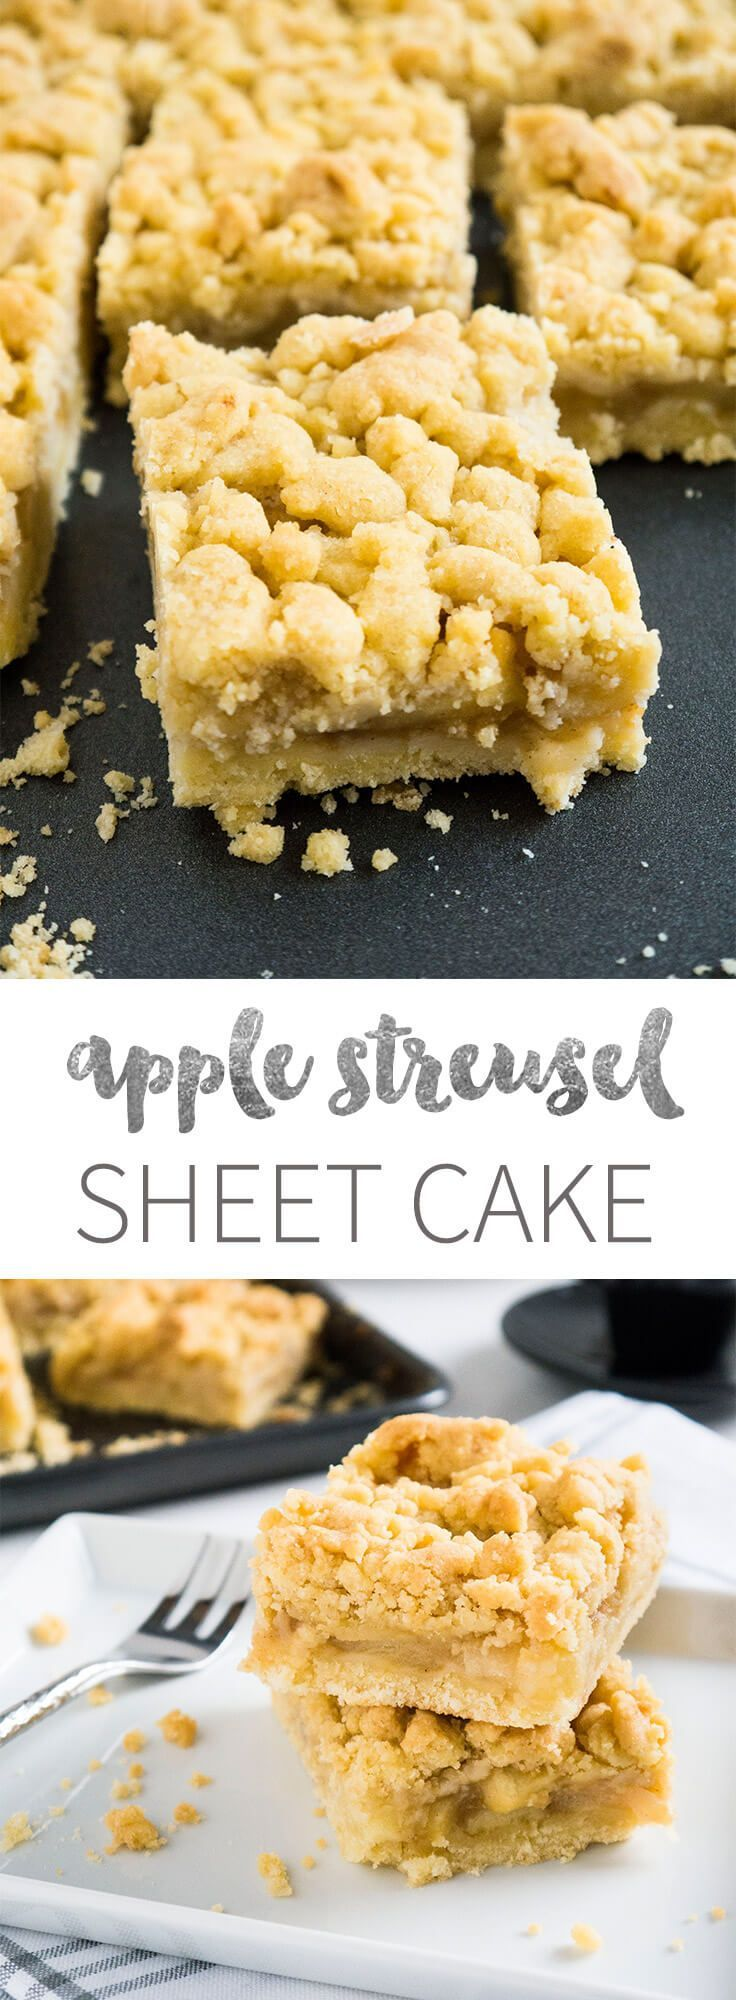 My Apple Streusel Sheet Cake is extra moist and fruity! It's made with fresh apple chunks and apple sauce plus a crumb topping.